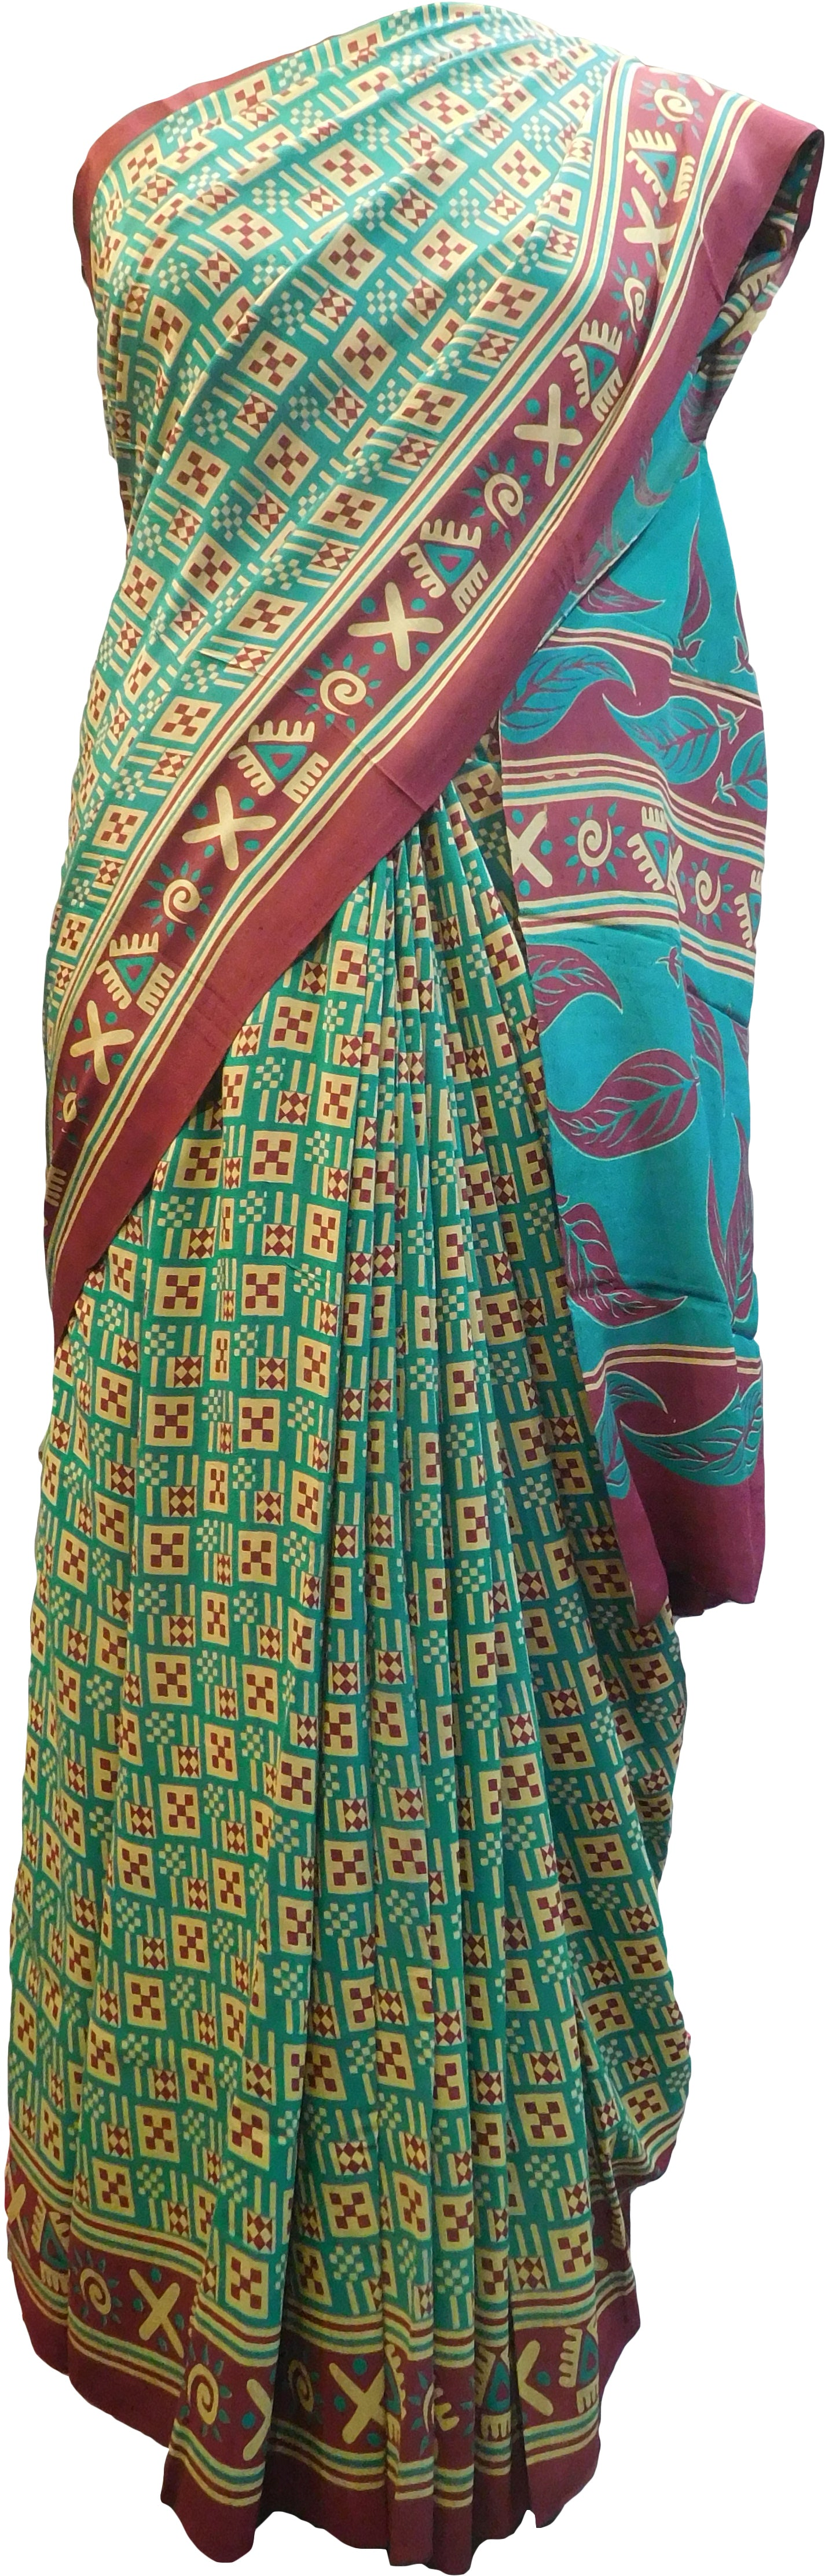 Multicolor Designer Wedding Partywear Pure Crepe Hand Brush Reprinted Kolkata Saree Sari With Blouse Piece  RP284